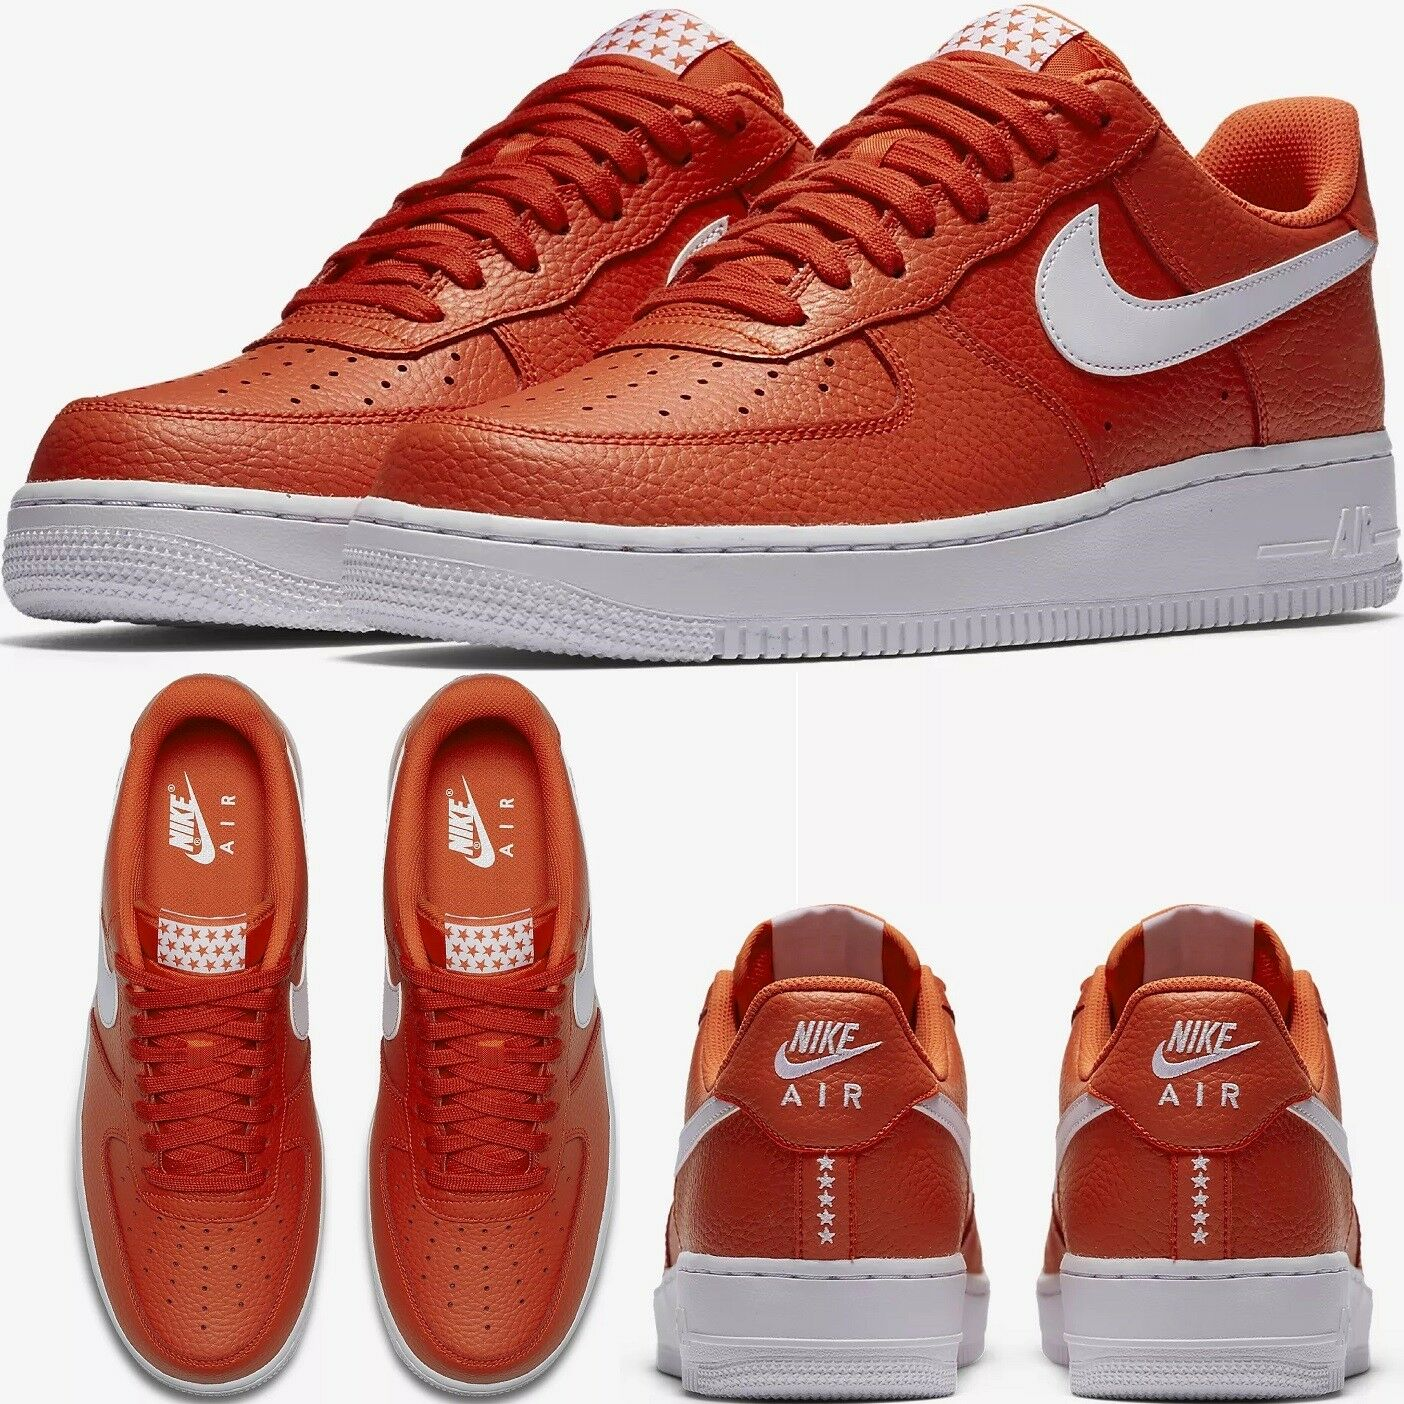 NIKE AIR FORCE 1 ONE SHOES LOW 07 Orange/White MEN'S SHOES ONE LIFESTYLE COMFY AA4083-800 1c0c59